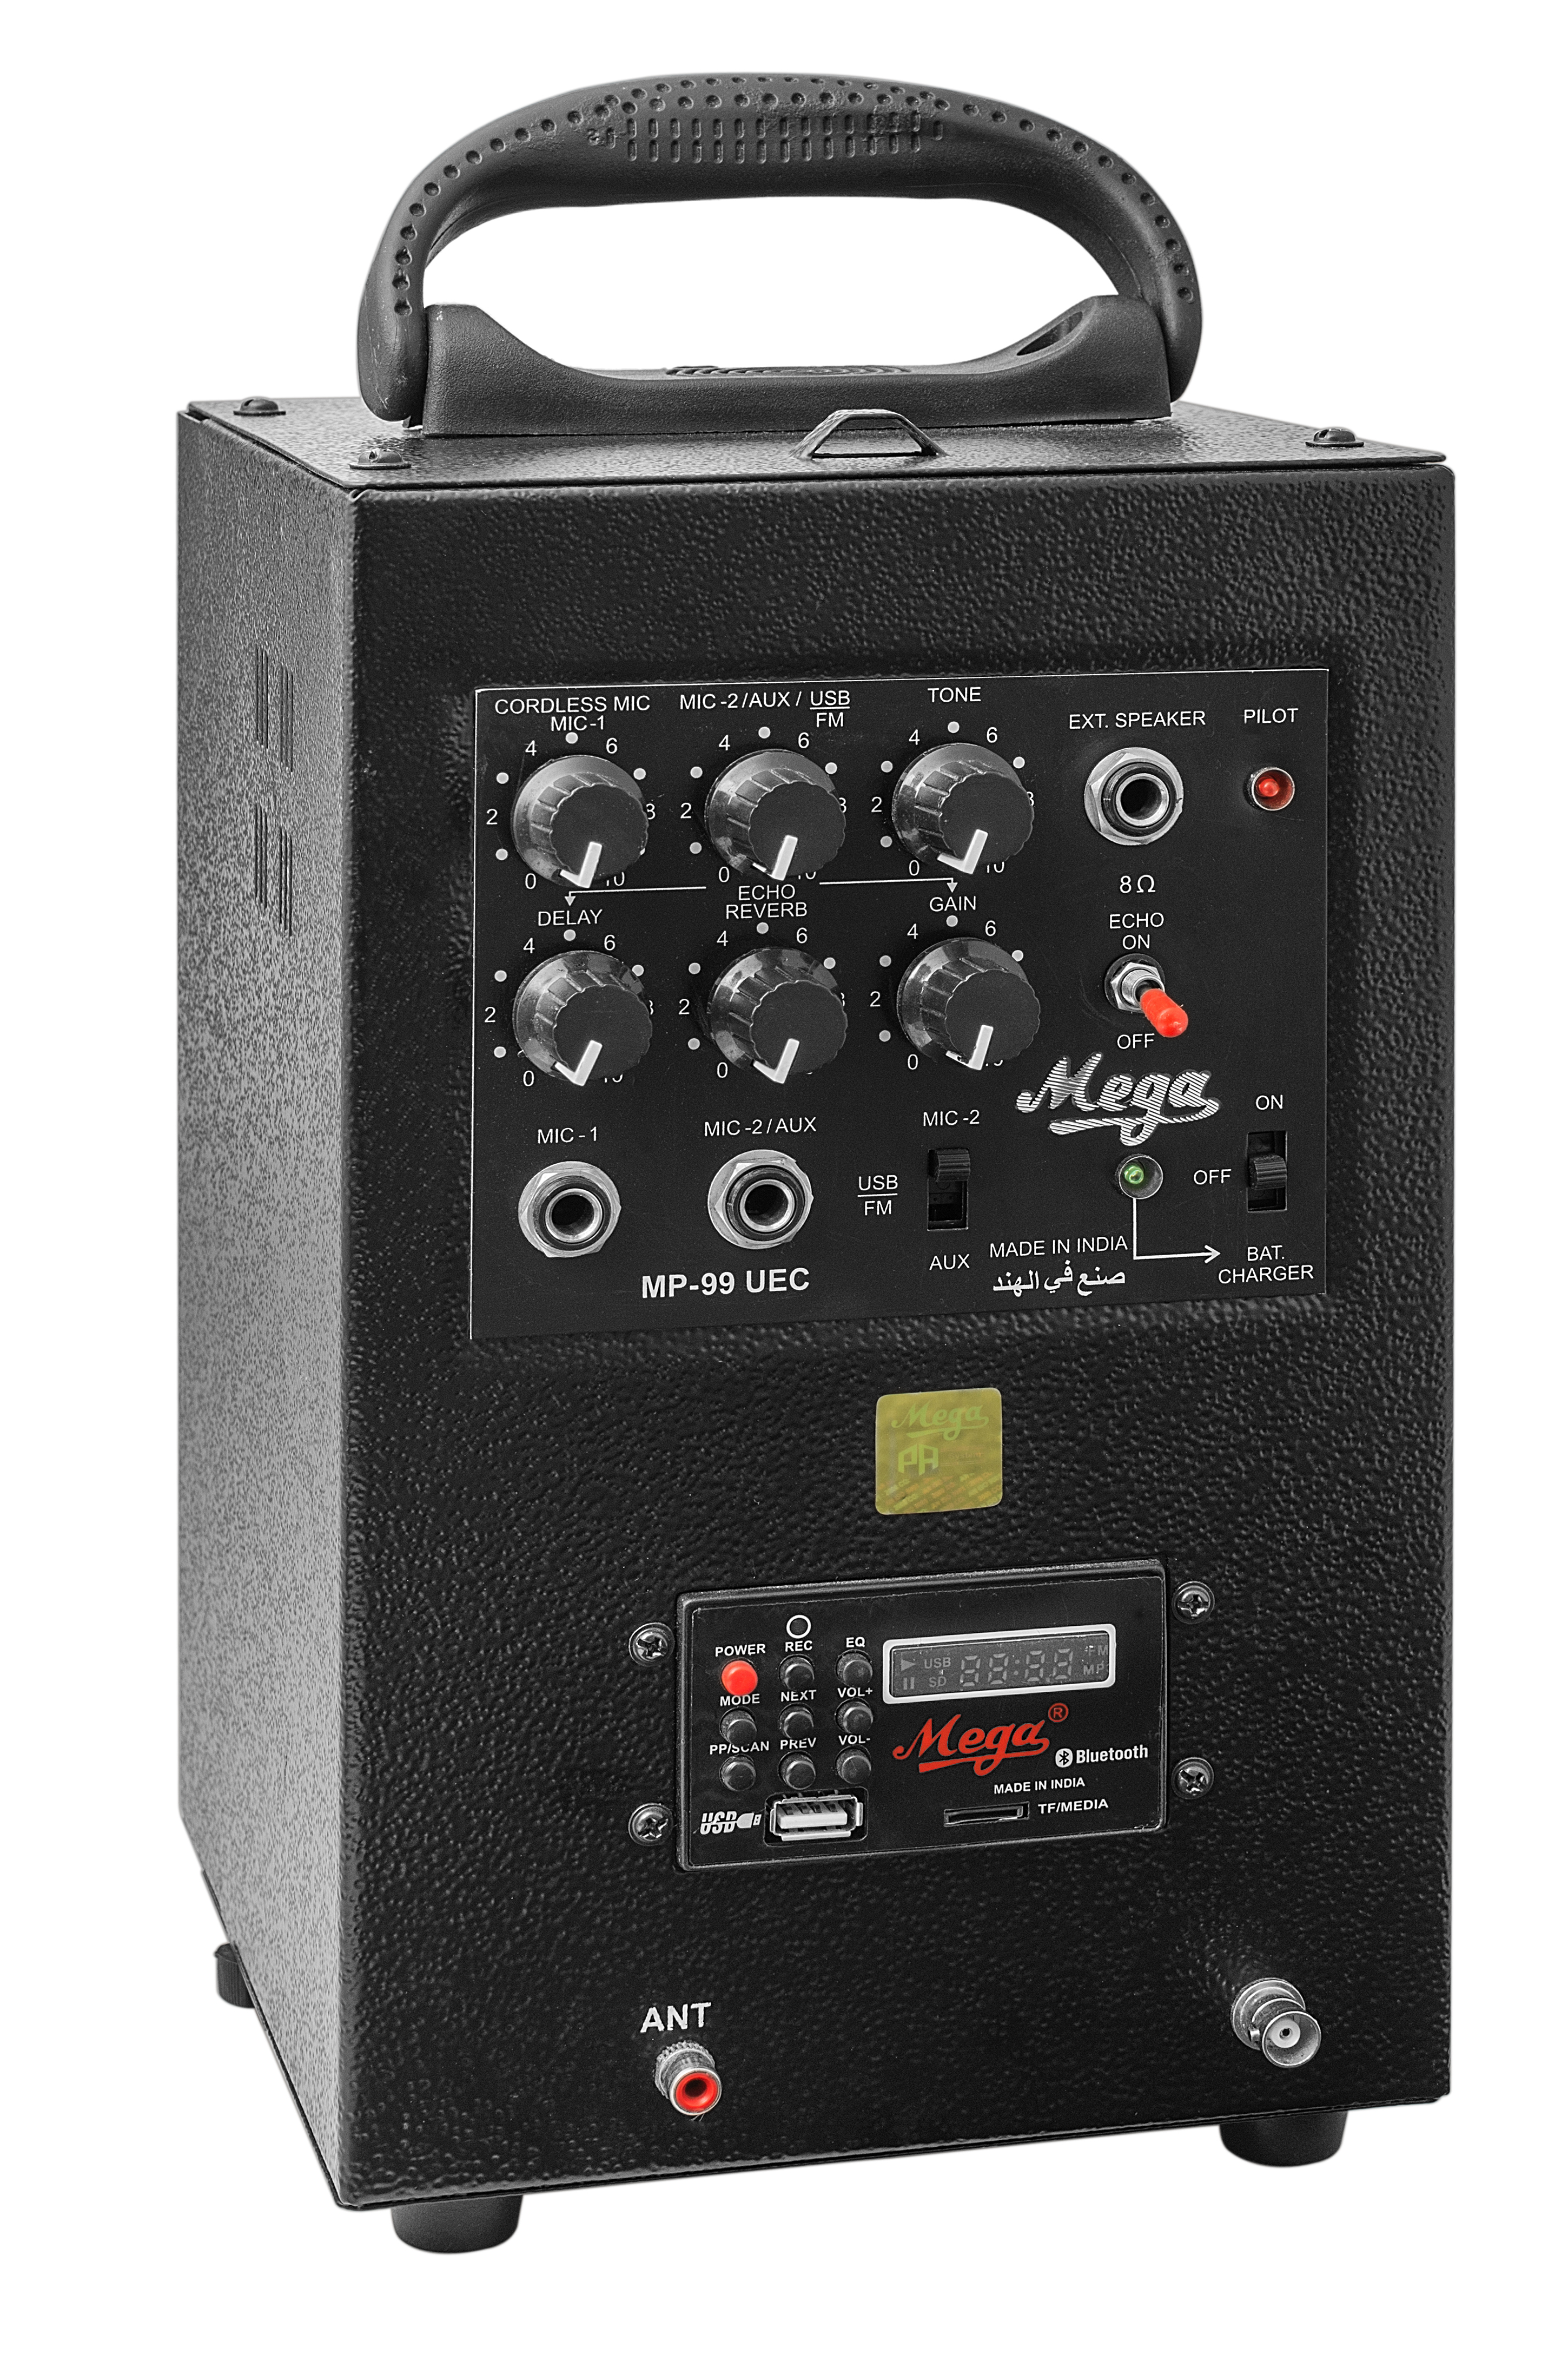 MP-99UEC WITH 1 EXTERNAL SPEAKER